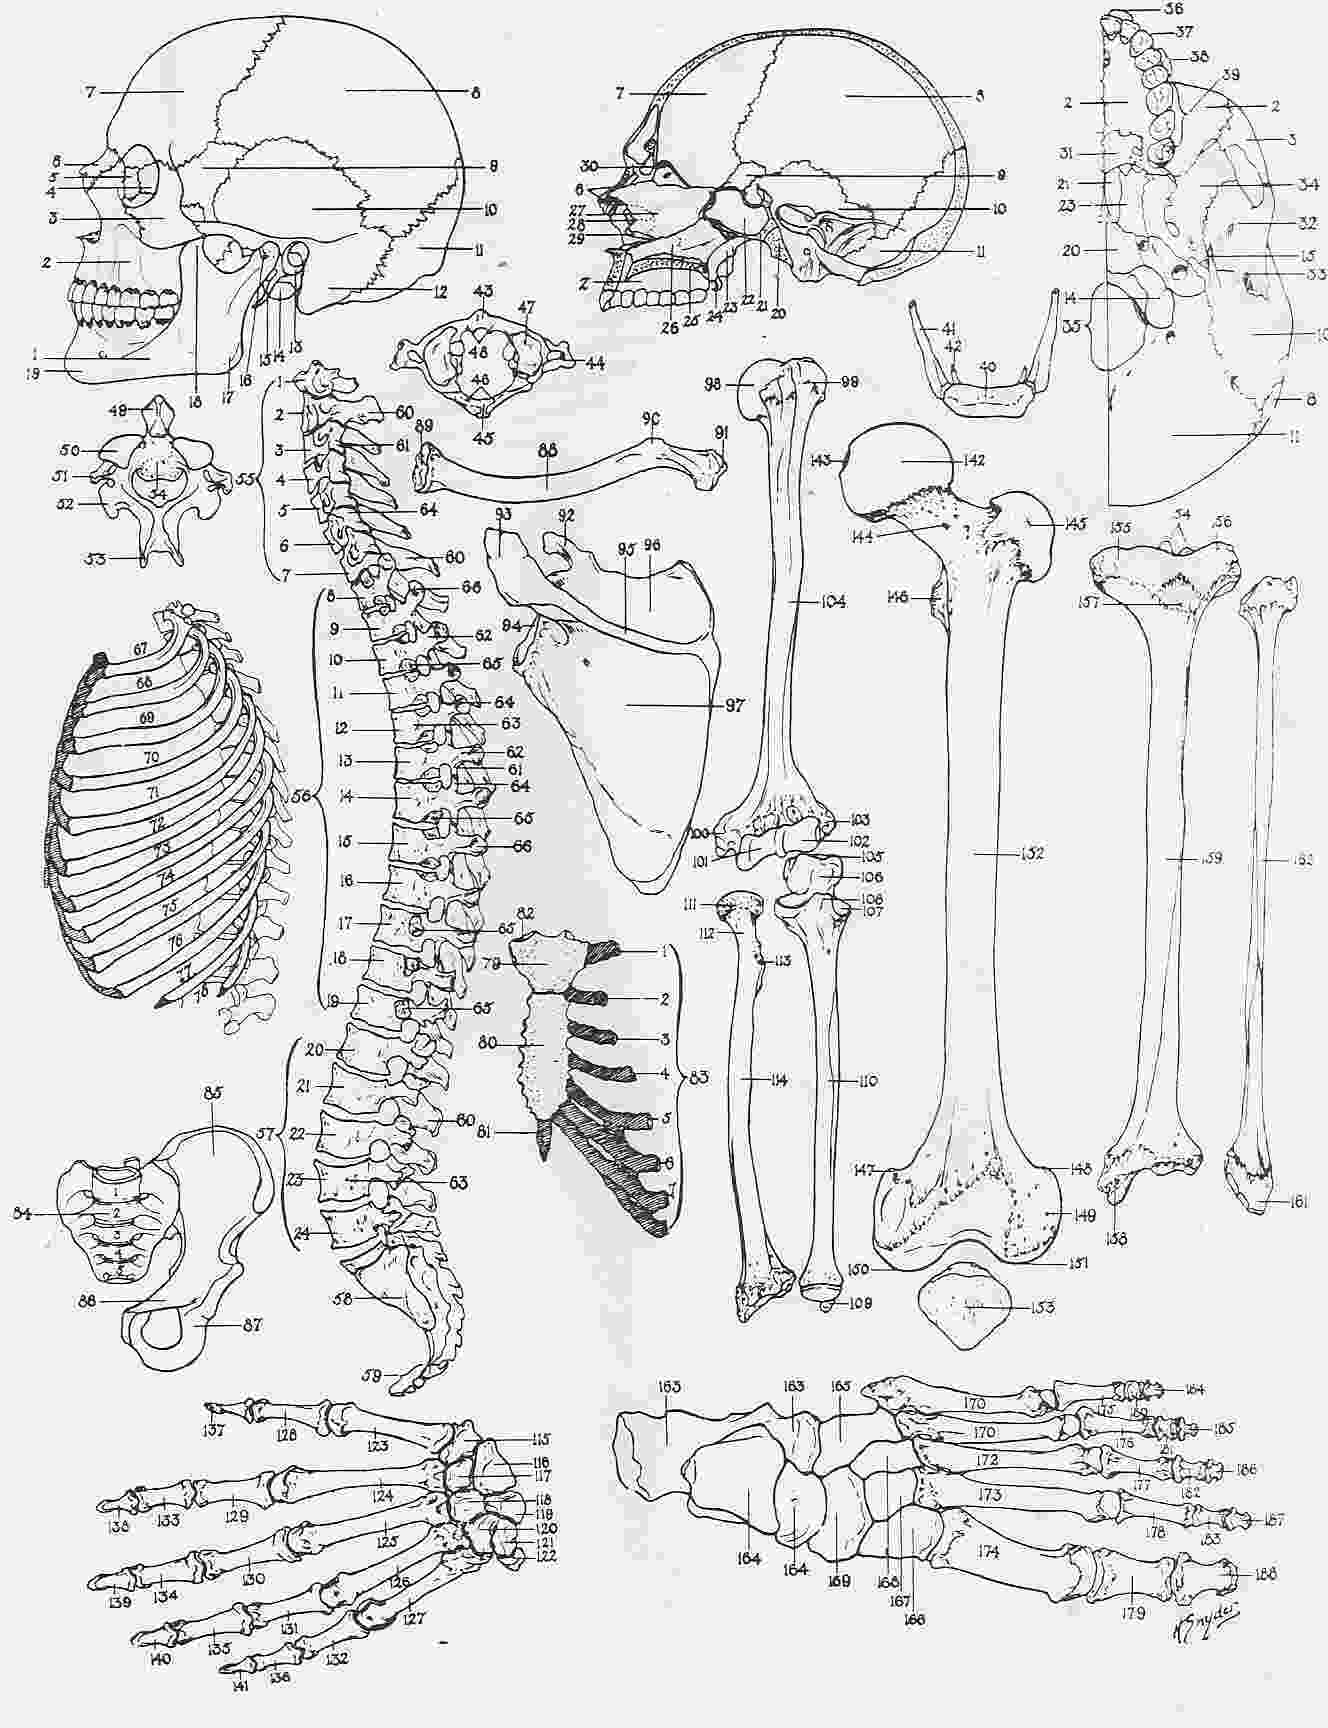 anatomy coloring pages free 9 best ap coloring pages images on pinterest anatomy anatomy pages coloring free